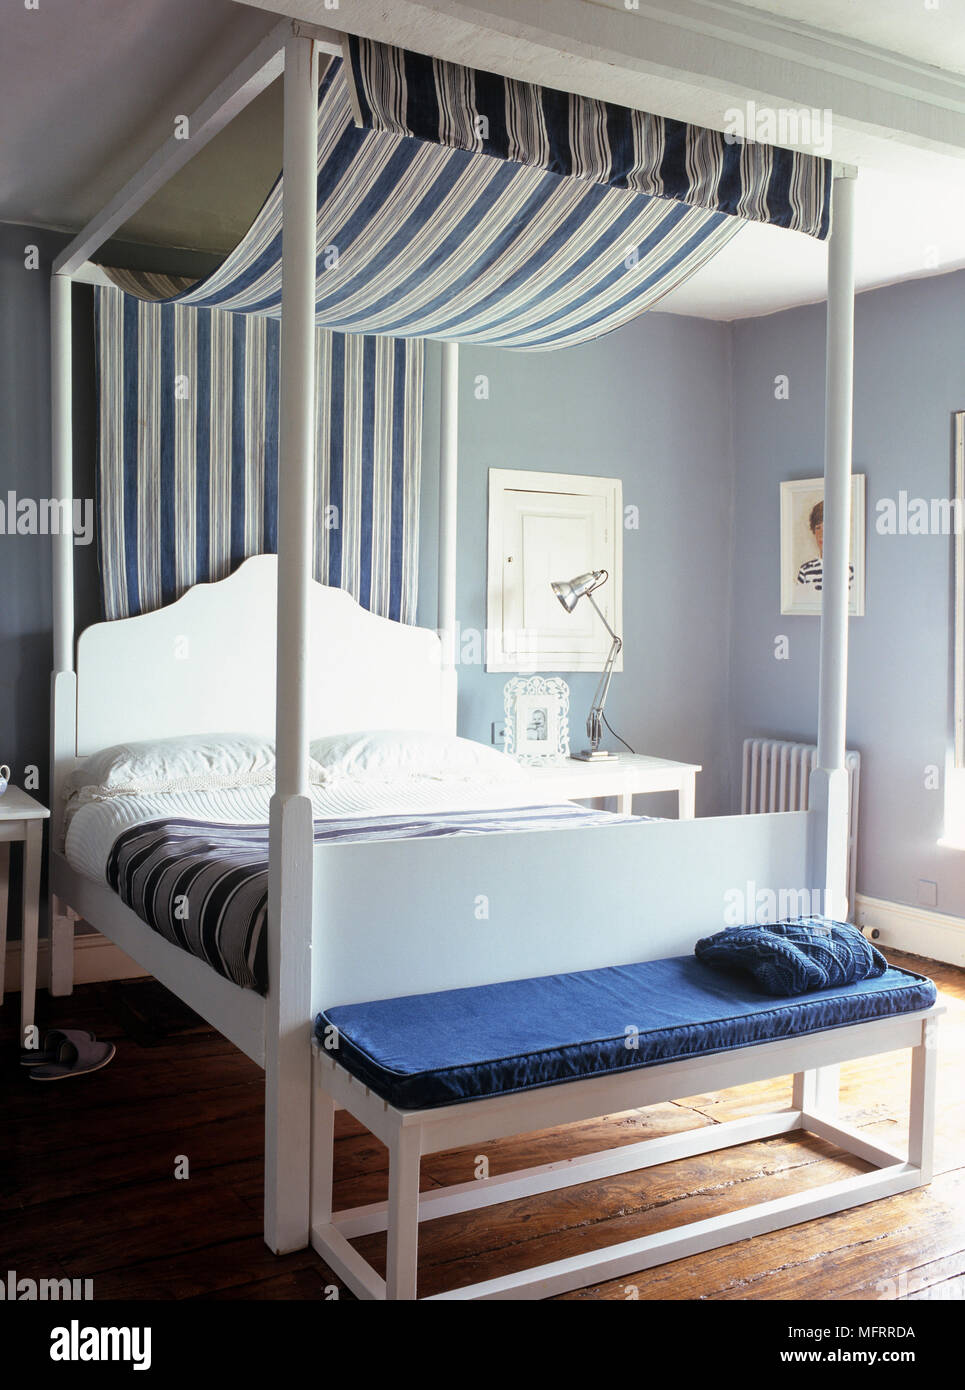 White Wood Four Poster Bed With Blue Stripe Fabric Canopy In Modern Bedroom Stock Photo Alamy